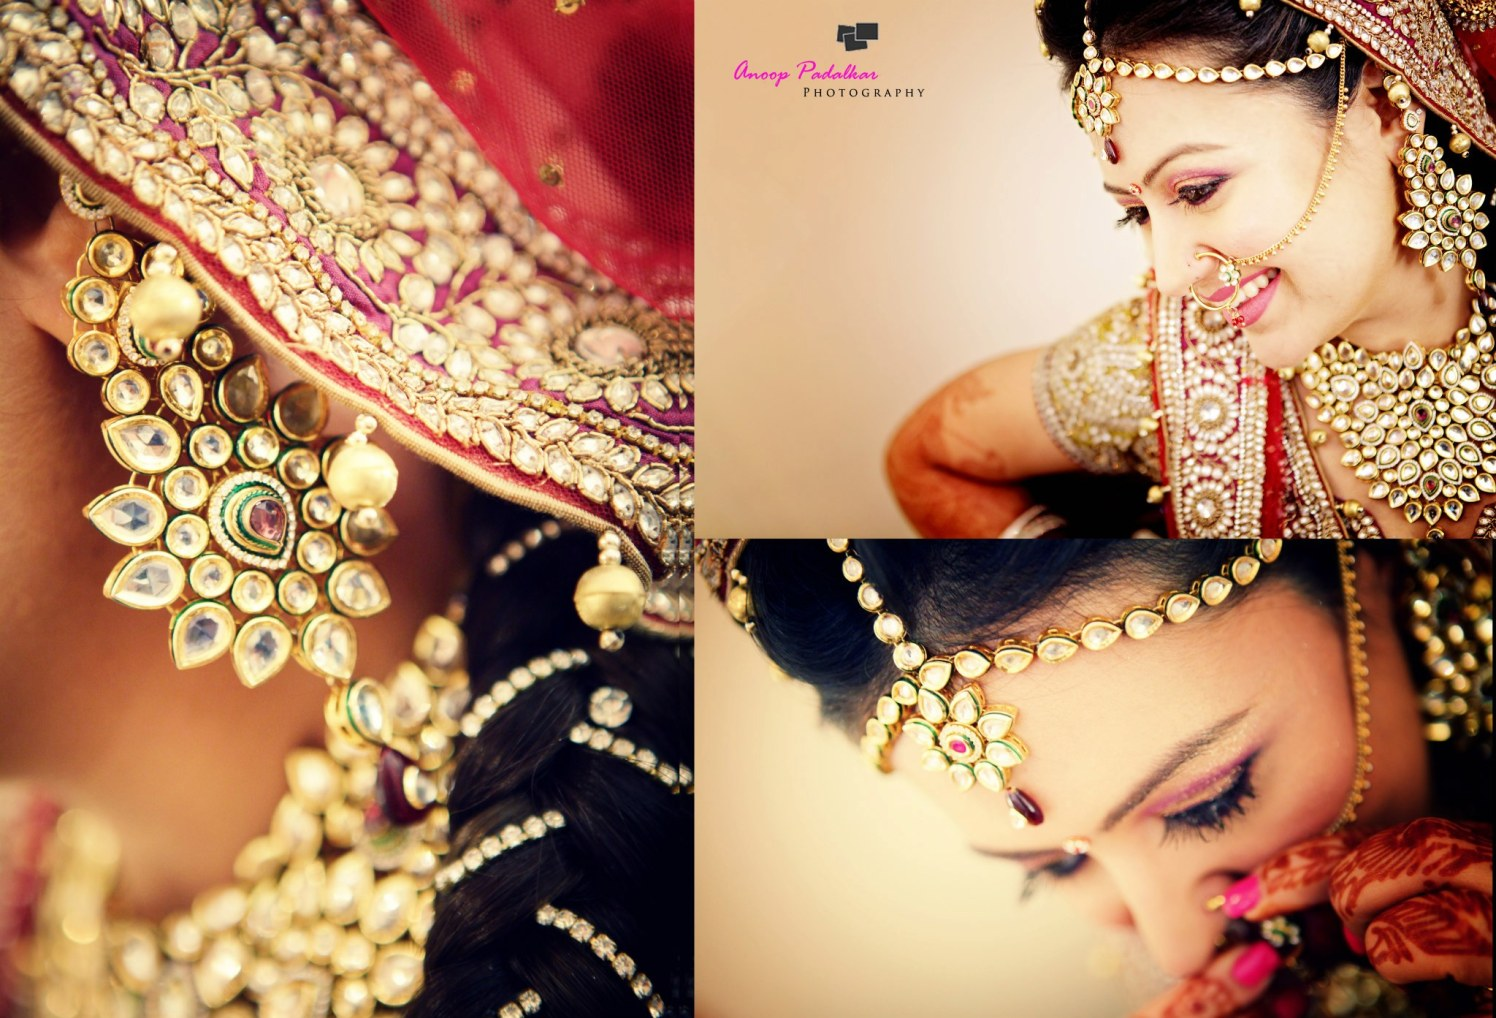 Bridal essentials by Wedding Krafter Wedding-photography | Weddings Photos & Ideas